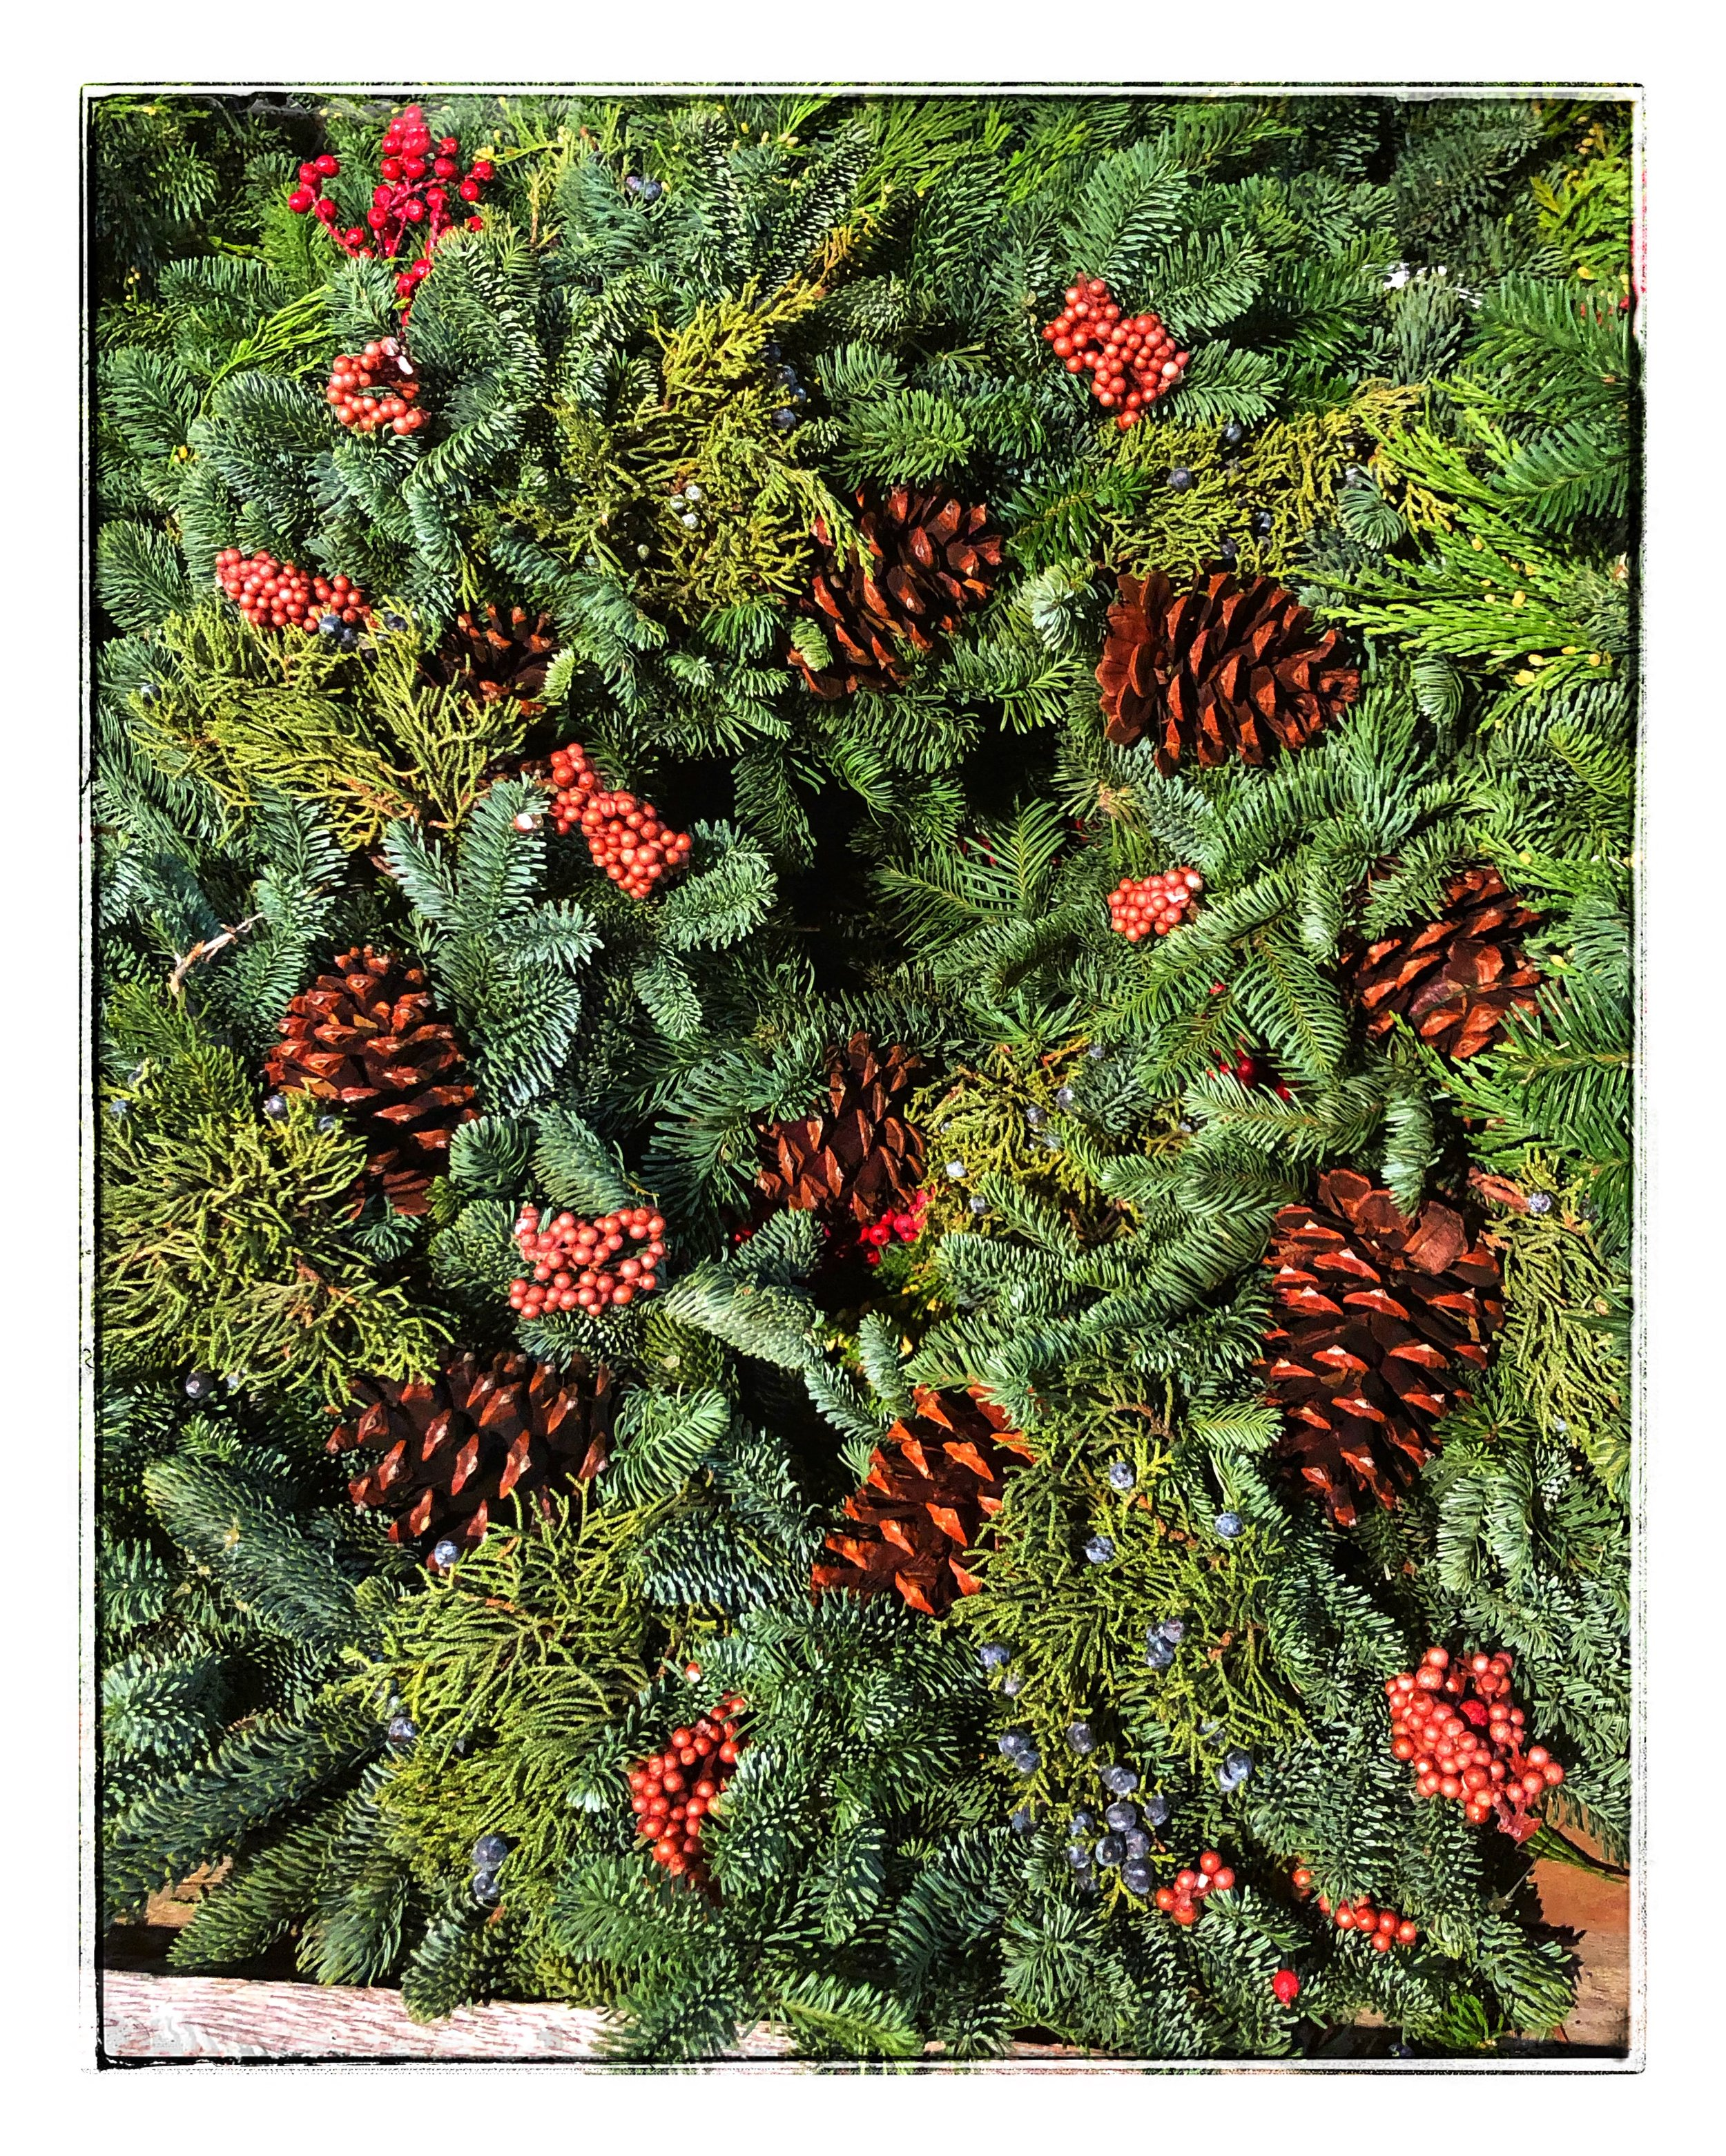 Wreaths at Russo's to decorate the season!